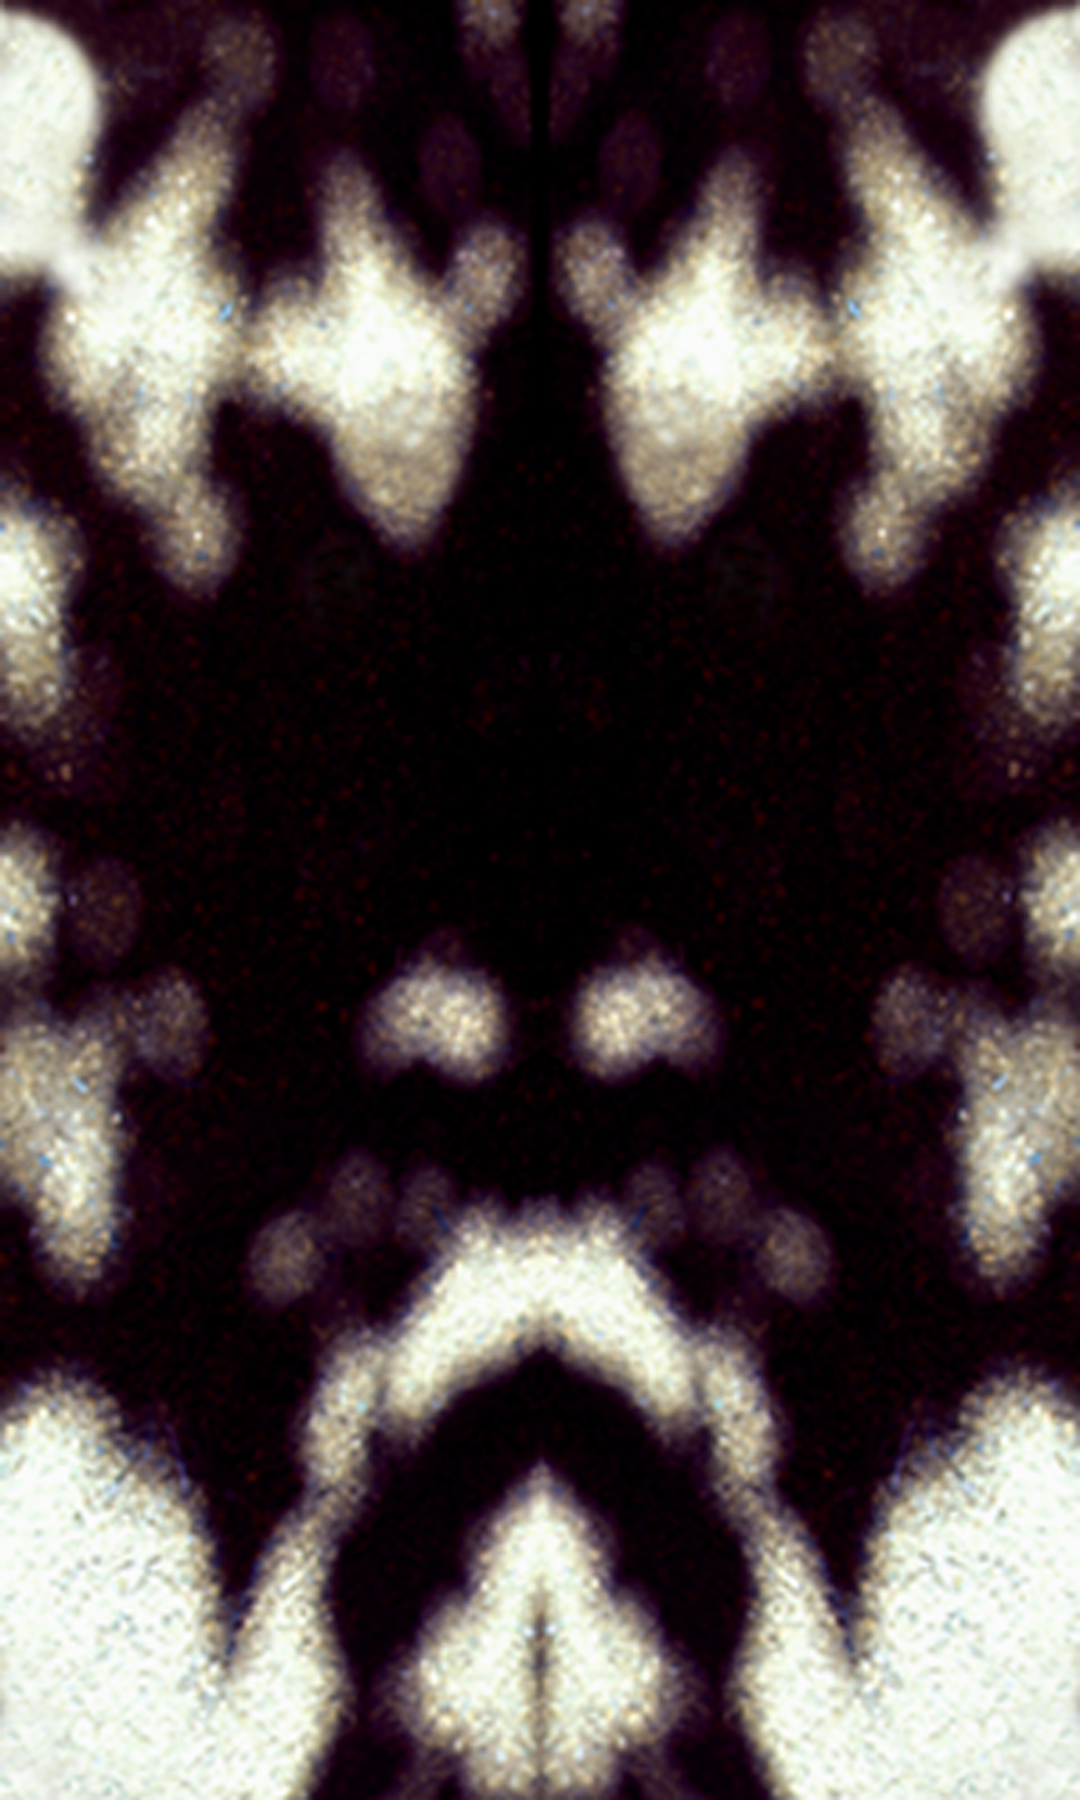 Rorschack Shadow Trilogy: Mask, 2003, Screen print, 21.5 x 35.75 inches.